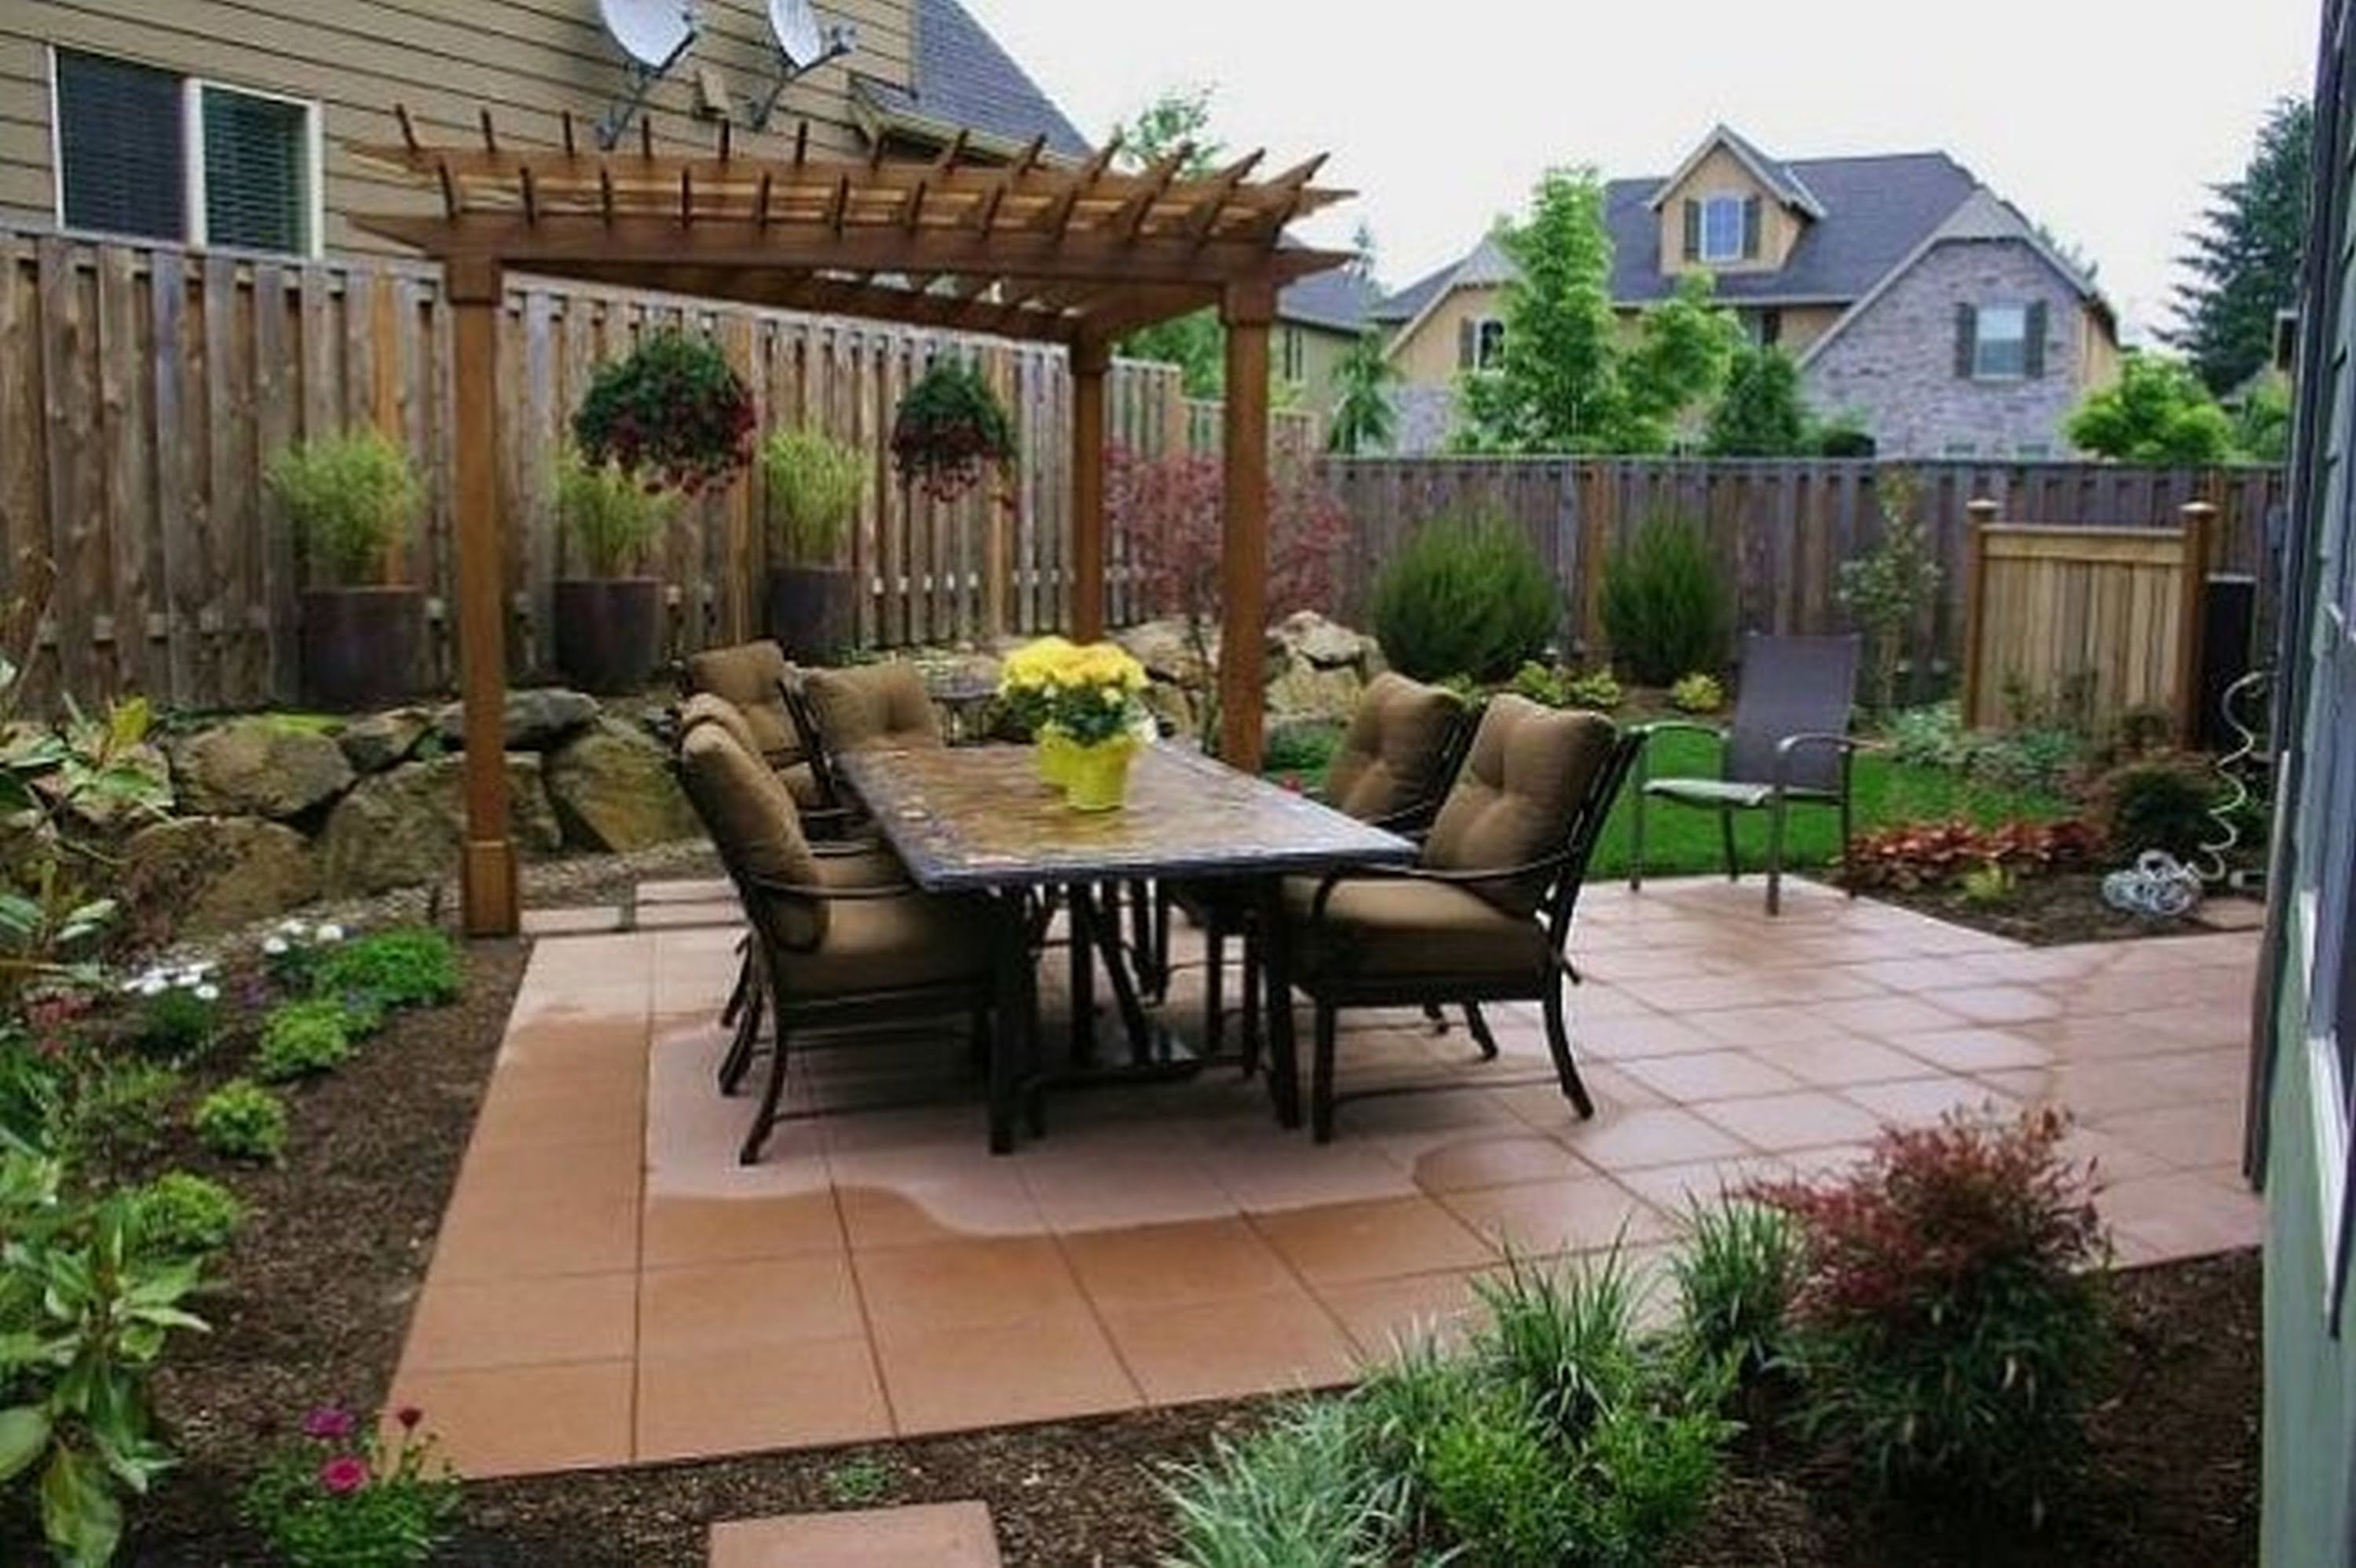 porch extended flooring the options ideas inspirational patio of pany panythe